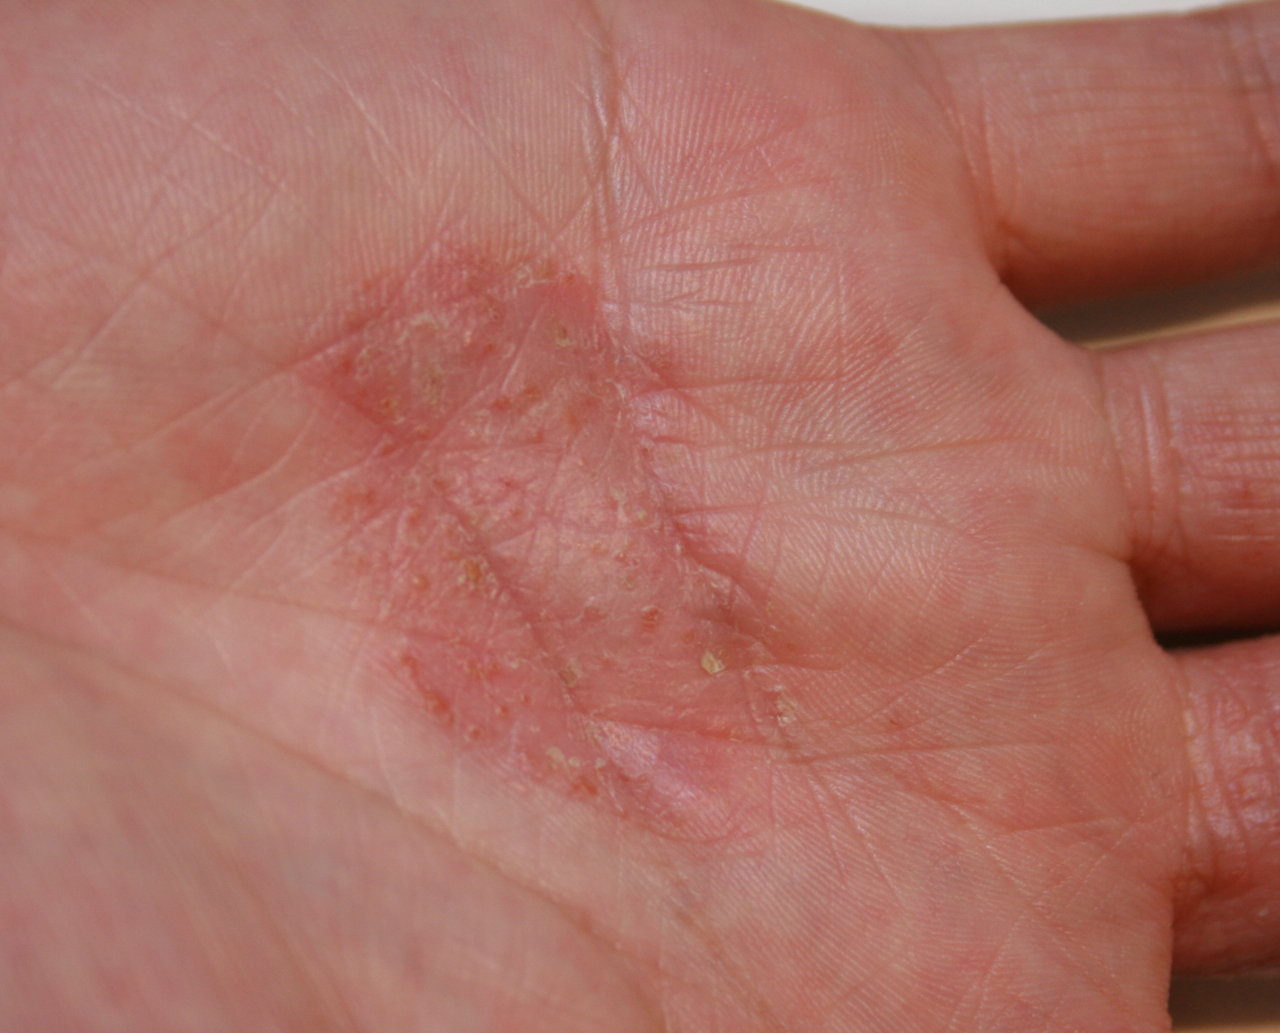 Hand eczema - before treatment